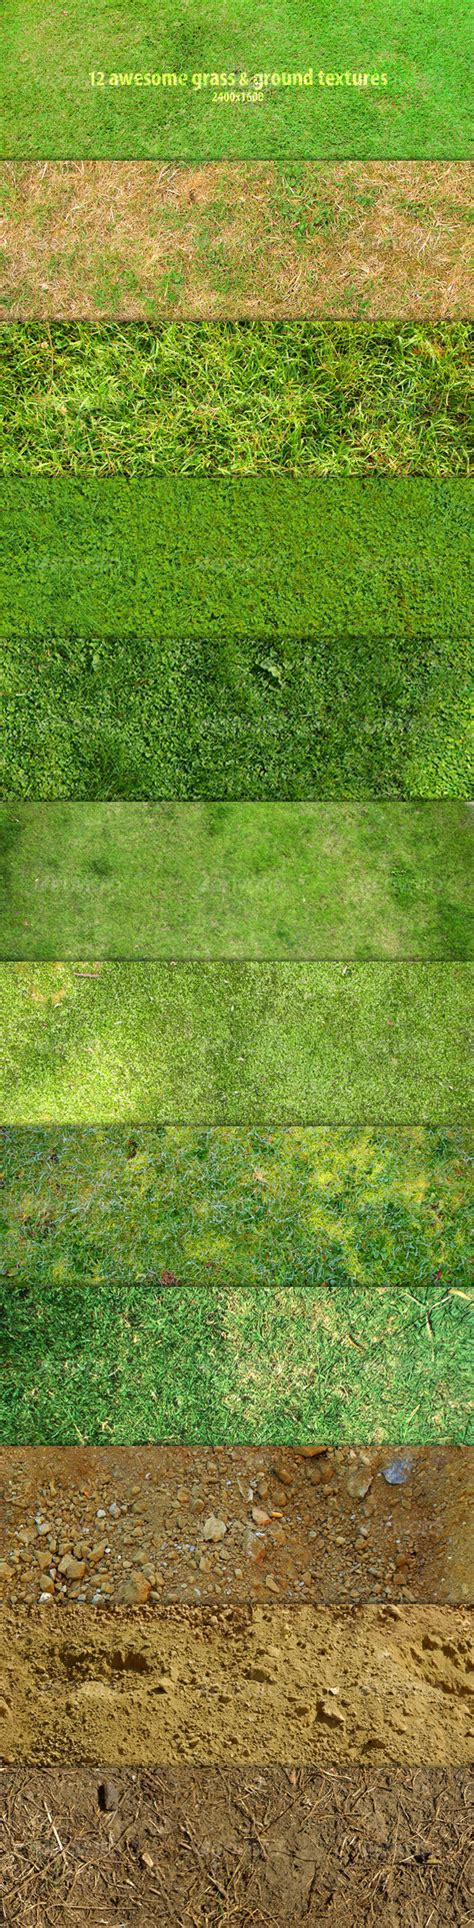 pattern nature ground 12 awesome grass ground textures graphicriver